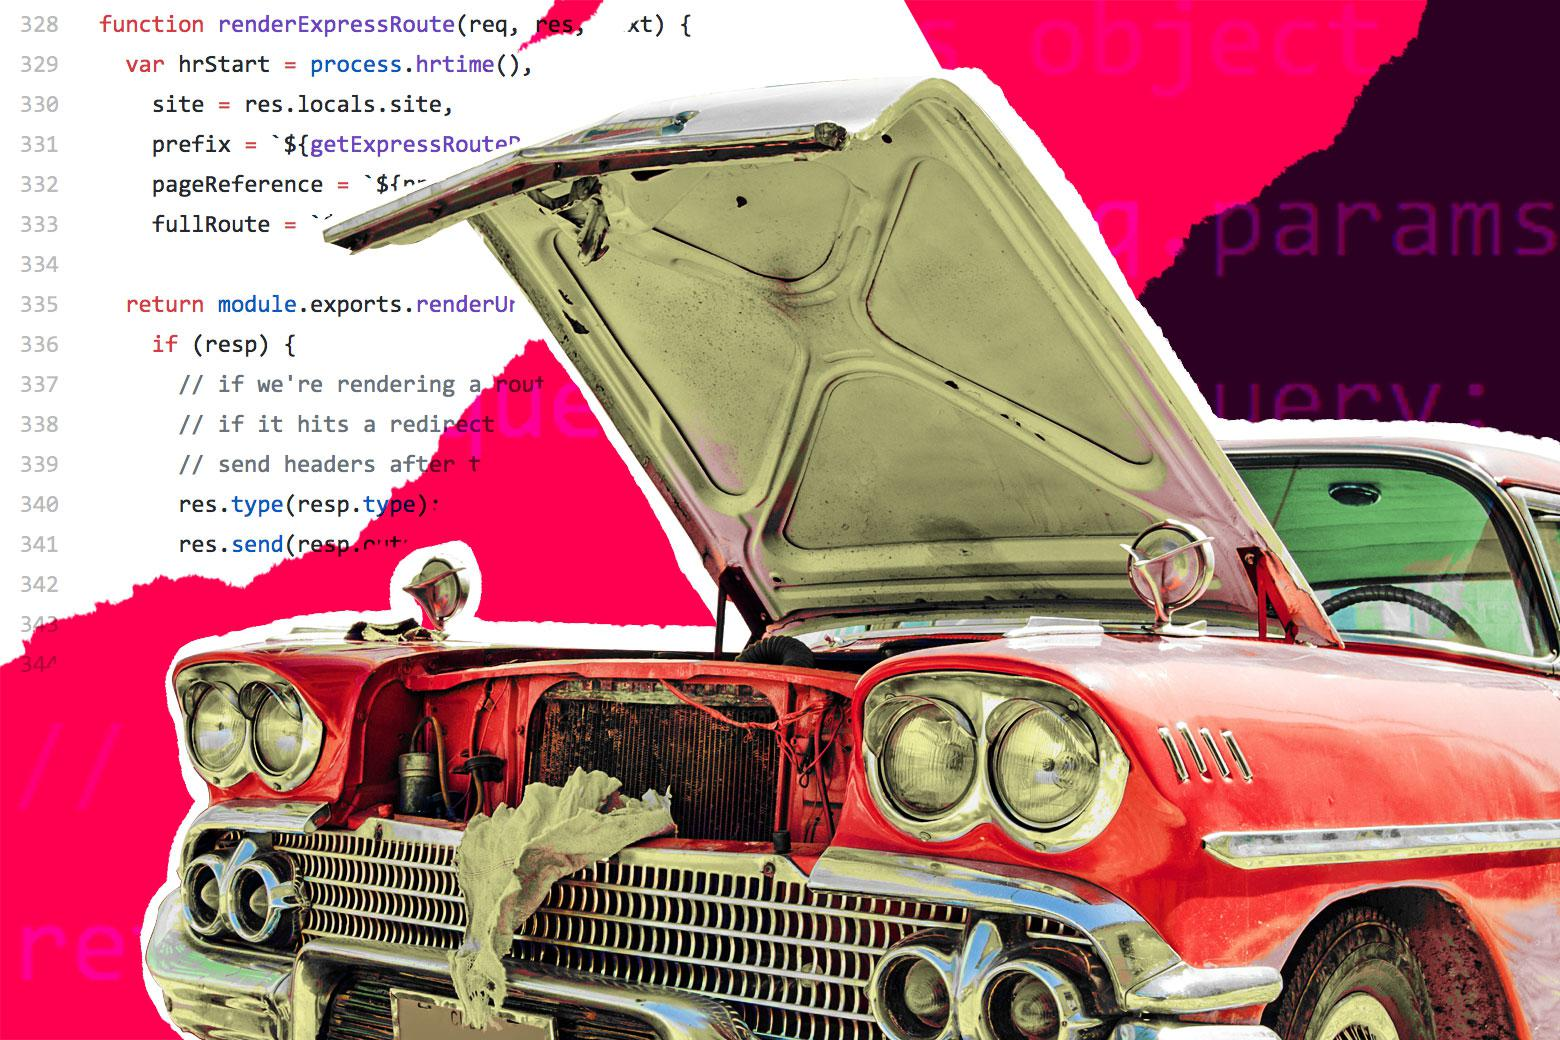 The open hood of a 1950s-style car, with snippets of code overlaid.